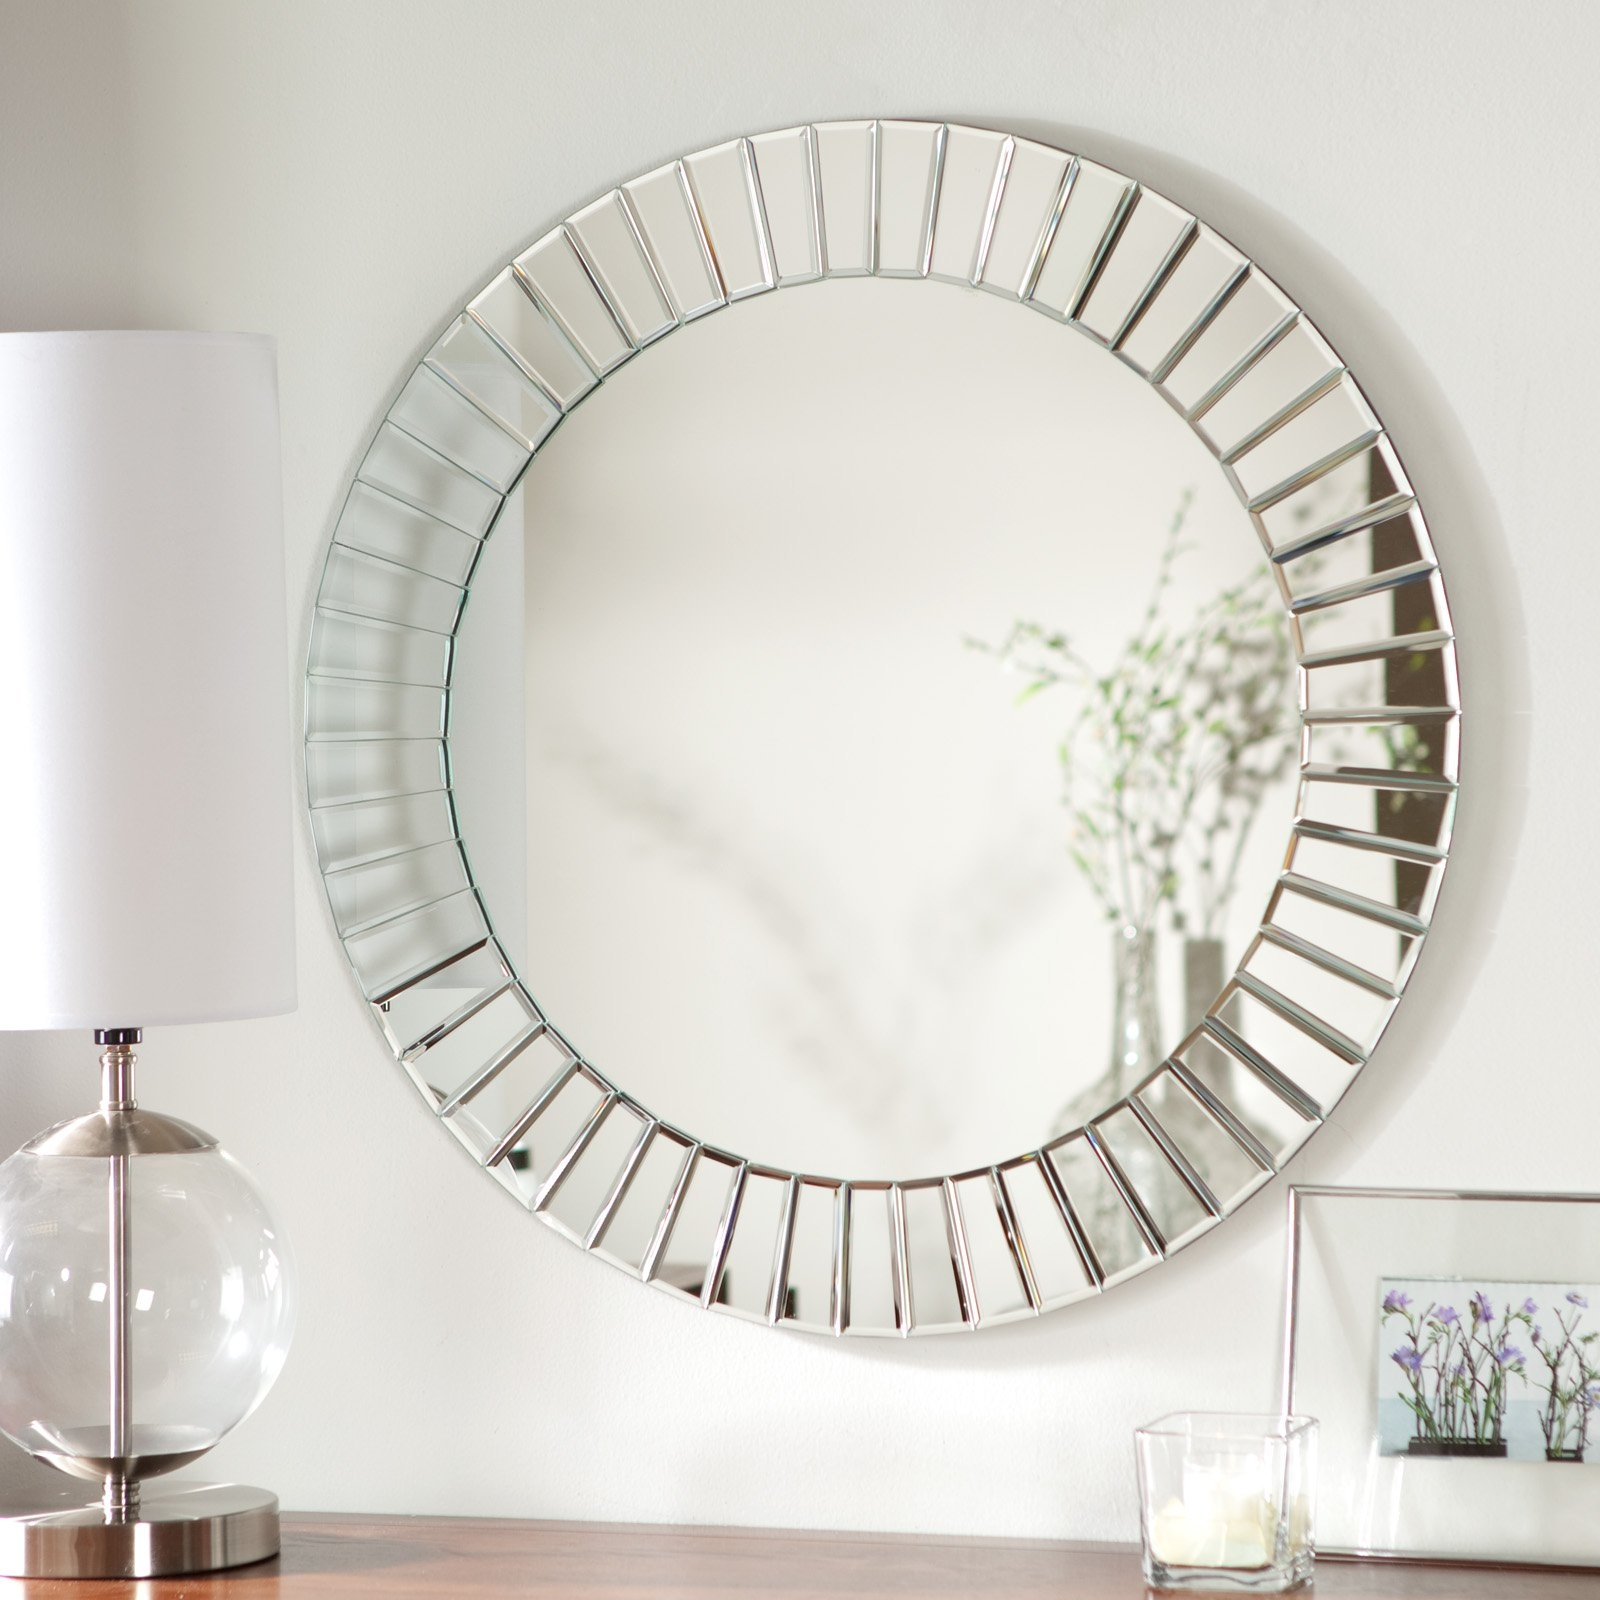 Fancy Full Length Mirror Latest Full Length U Floor Mirrors Buy Regarding Fancy Mirrors For Sale (Image 7 of 14)